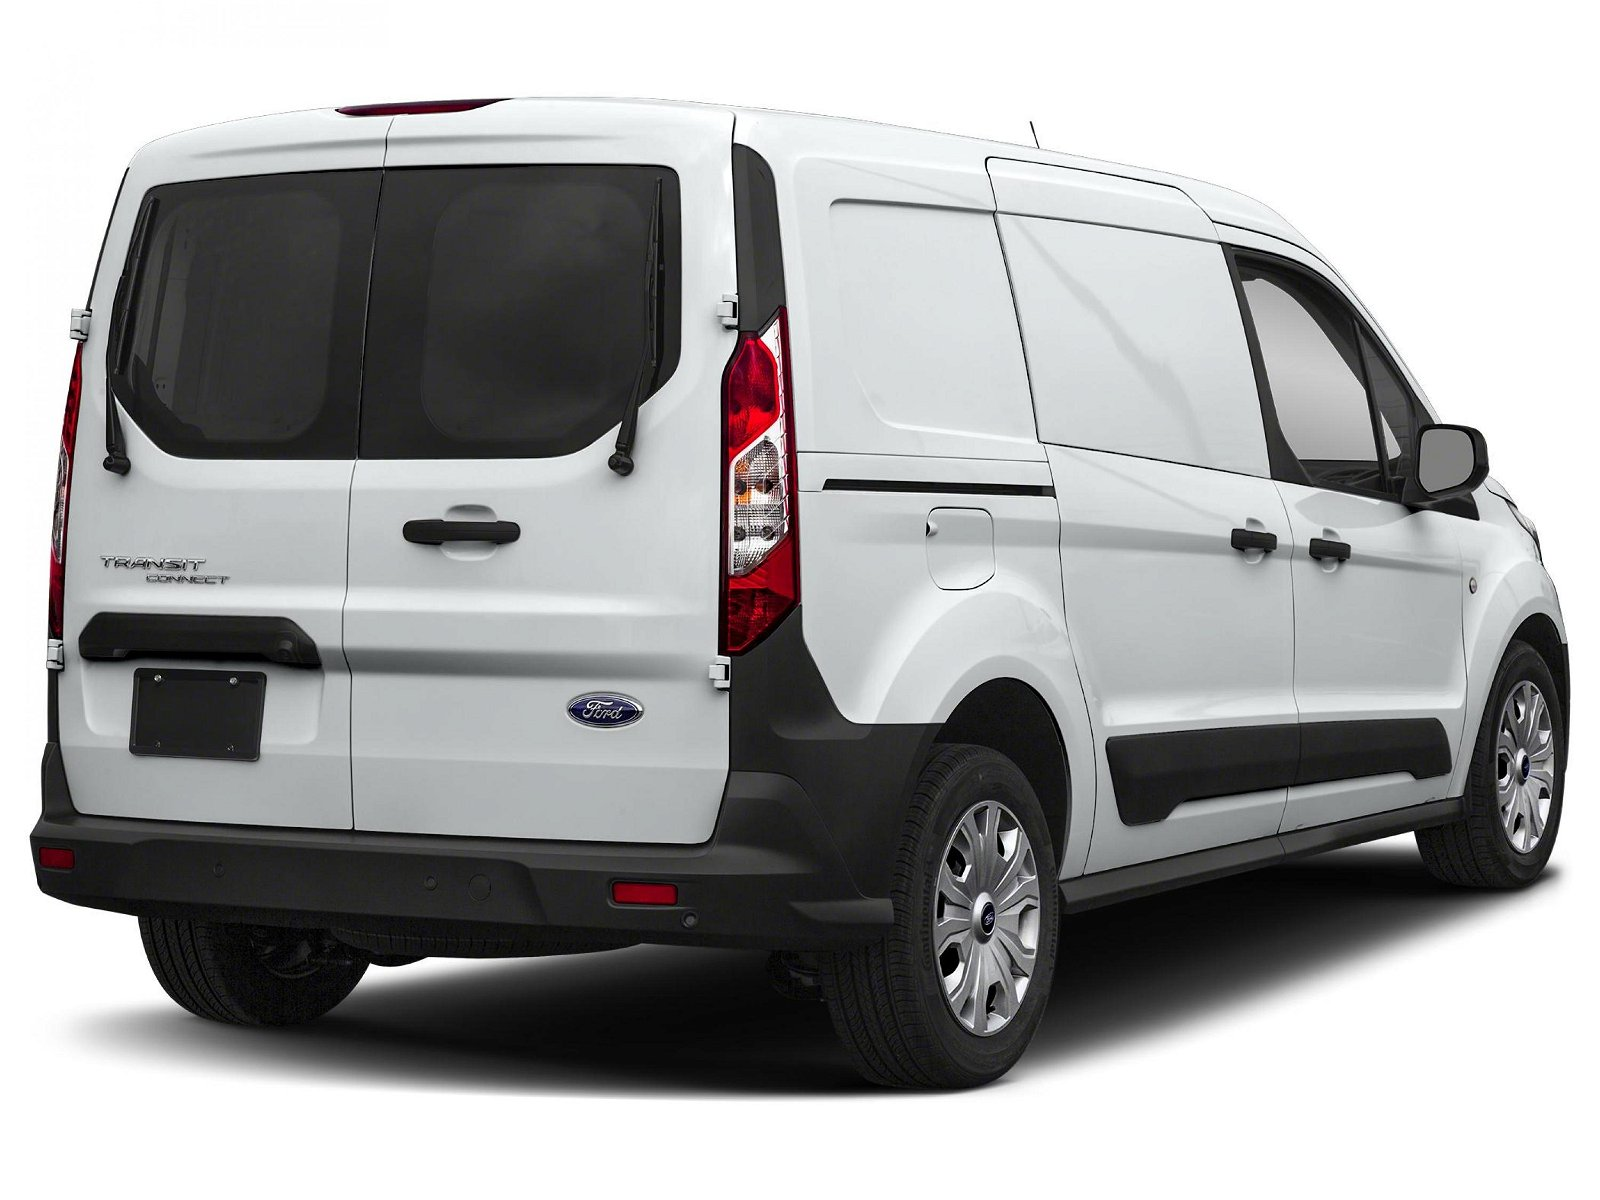 2021 Ford Transit Connect XLT Cargo Van 110A - Dual Sliding Doors with Rear Cargo Doors